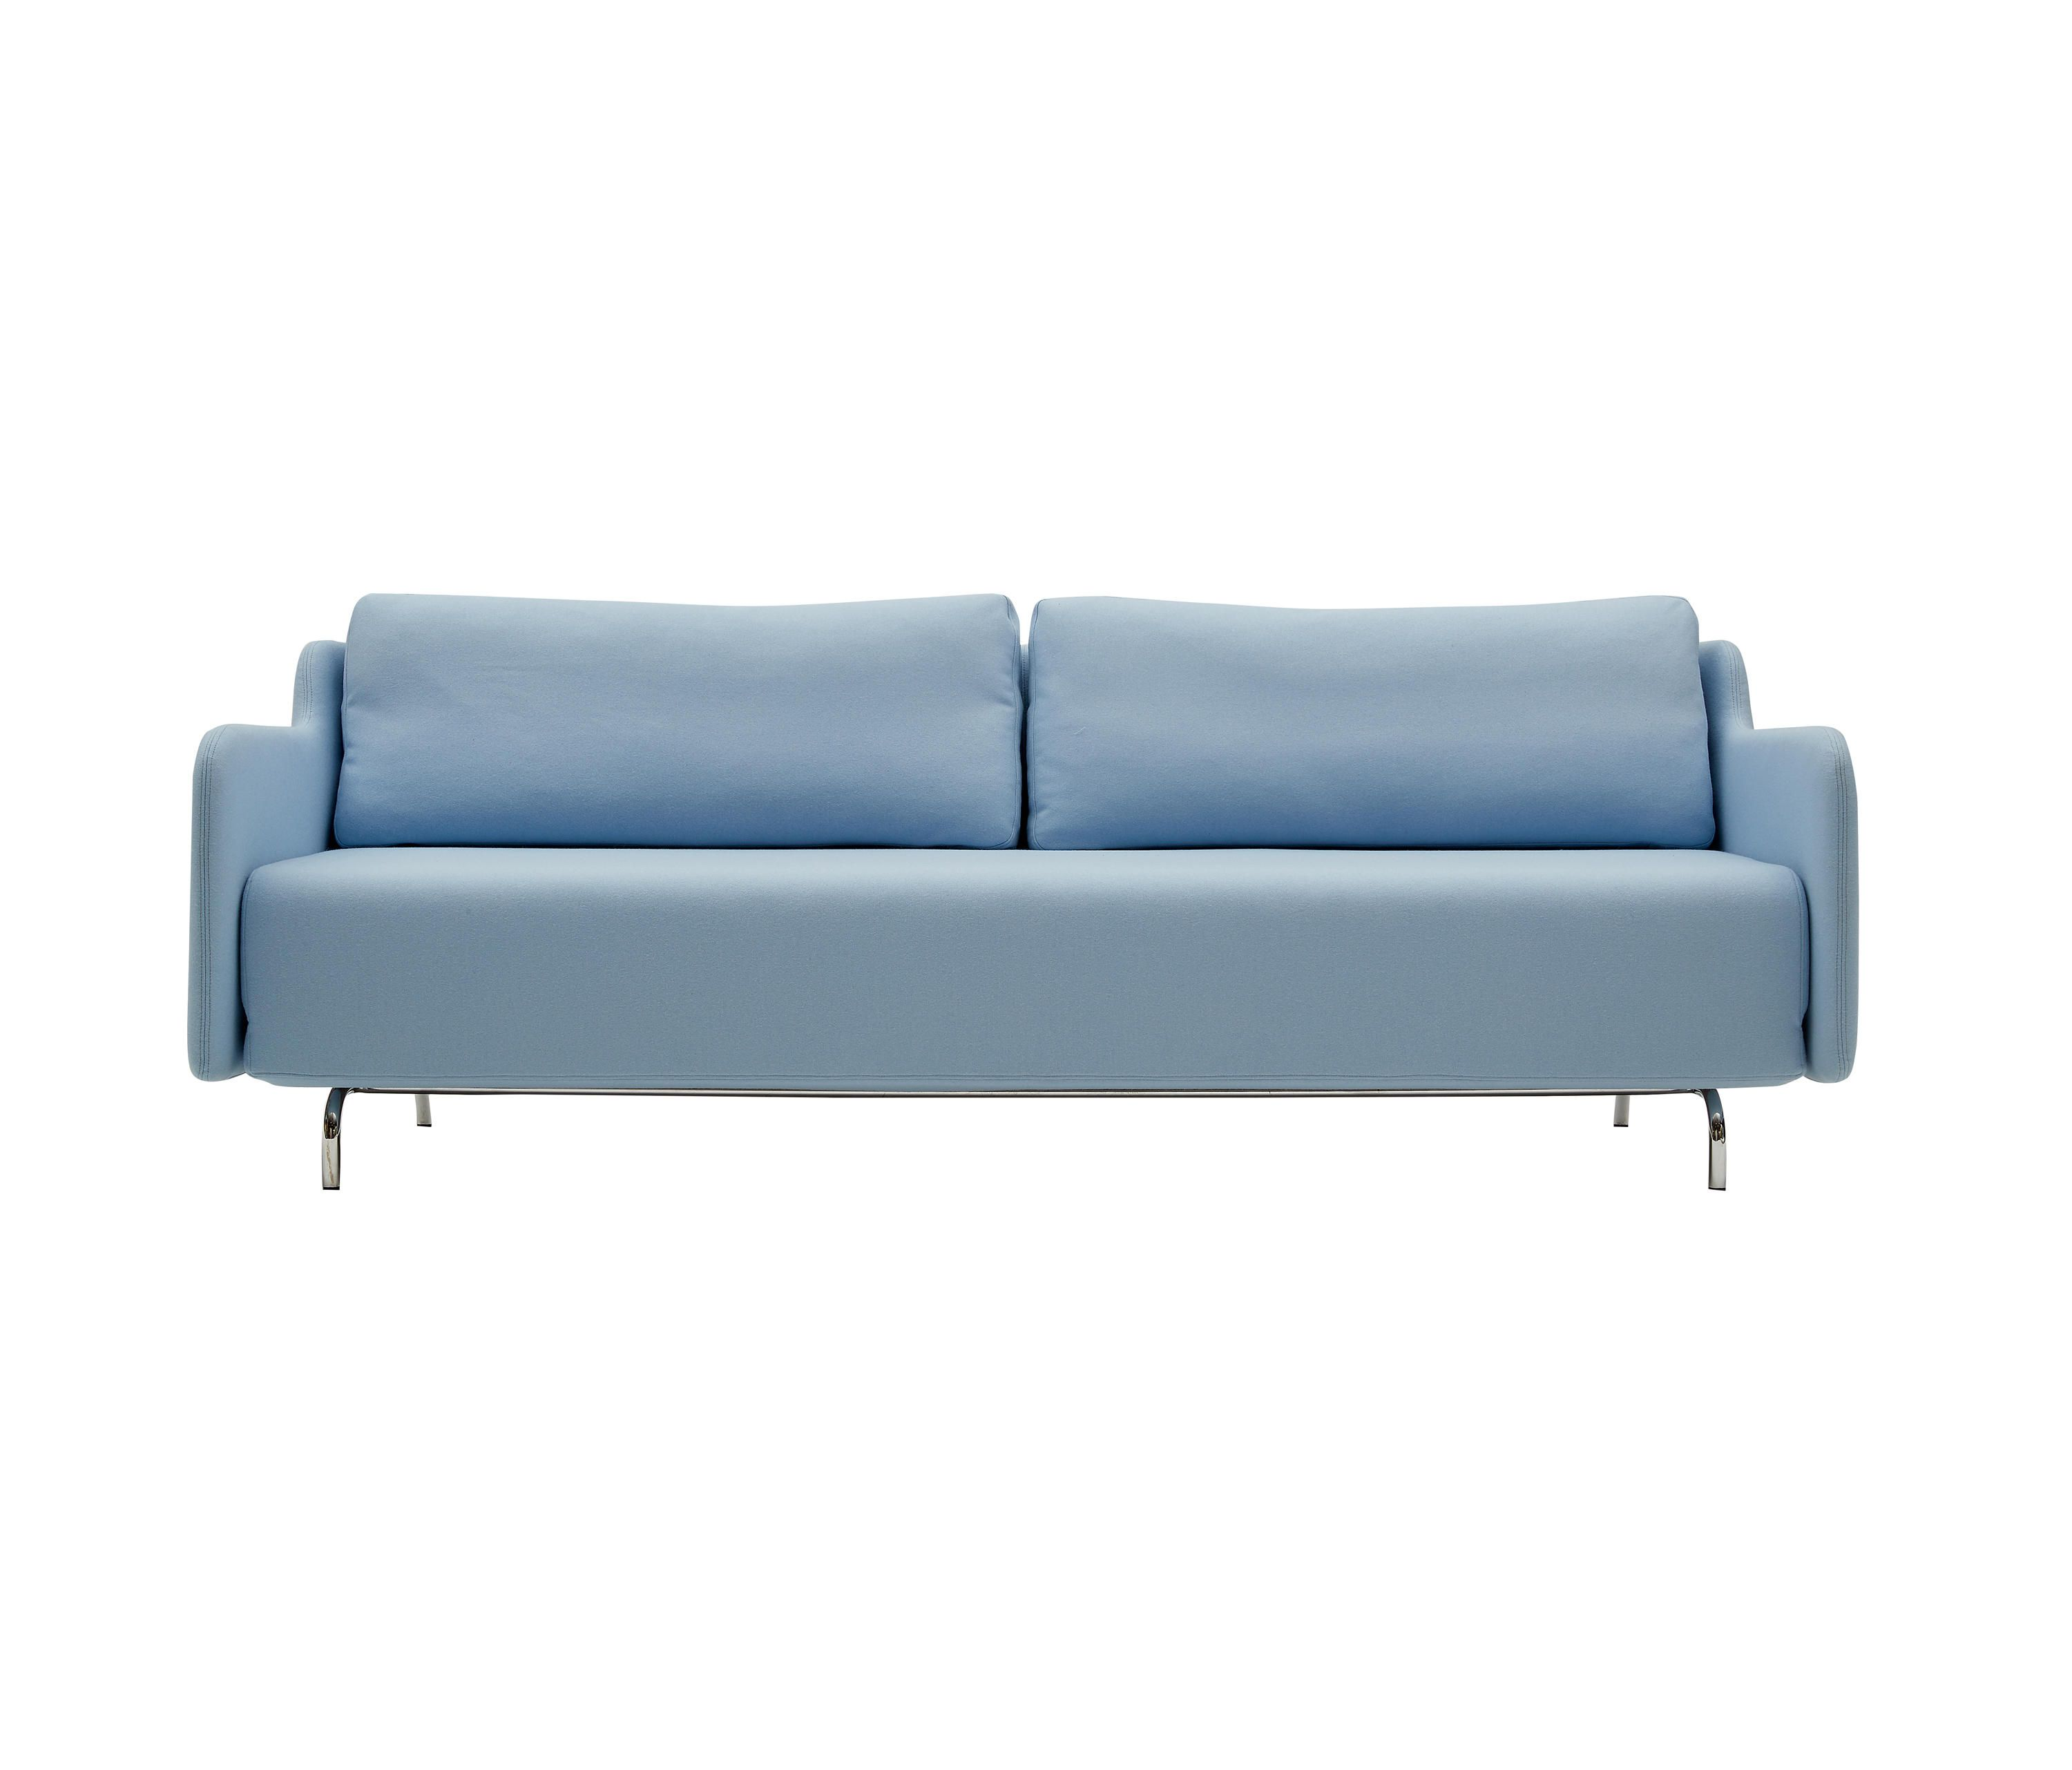 Venus Sofa By Busk Hertzog For Softline A S Architonic